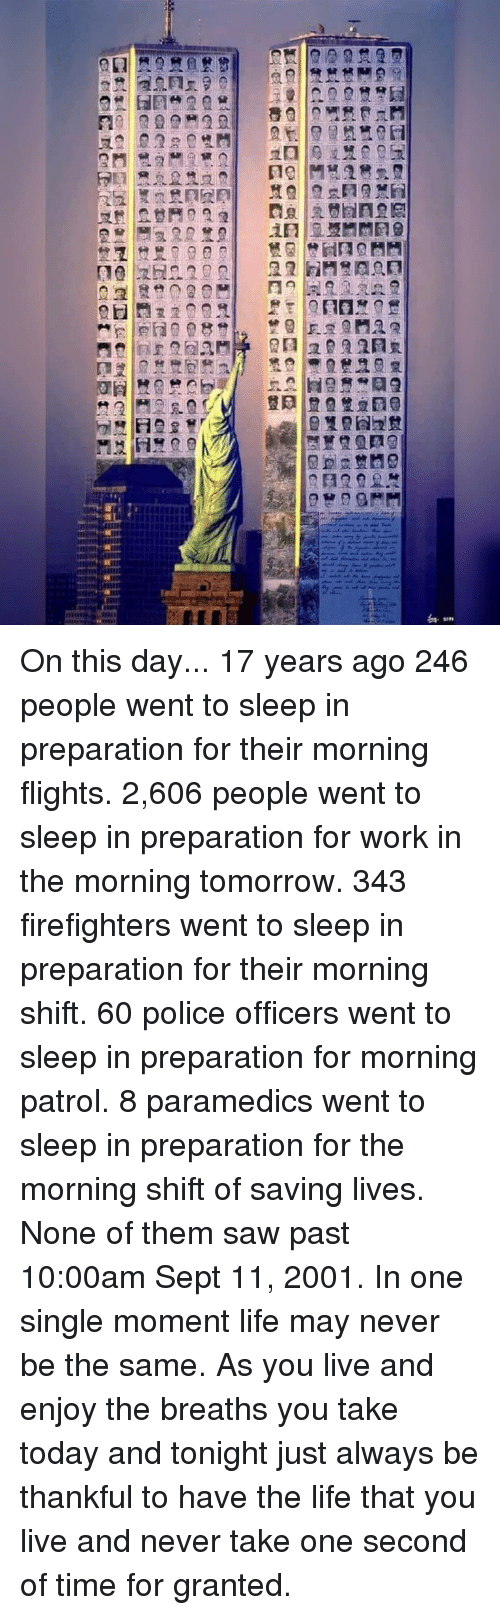 Life, Memes, and Police: On this day... 17 years ago 246 people went to sleep in preparation for their morning flights. 2,606 people went to sleep in preparation for work in the morning tomorrow. 343 firefighters went to sleep in preparation for their morning shift. 60 police officers went to sleep in preparation for morning patrol. 8 paramedics went to sleep in preparation for the morning shift of saving lives. None of them saw past 10:00am Sept 11, 2001. In one single moment life may never be the same. As you live and enjoy the breaths you take today and tonight just always be thankful to have the life that you live and never take one second of time for granted.